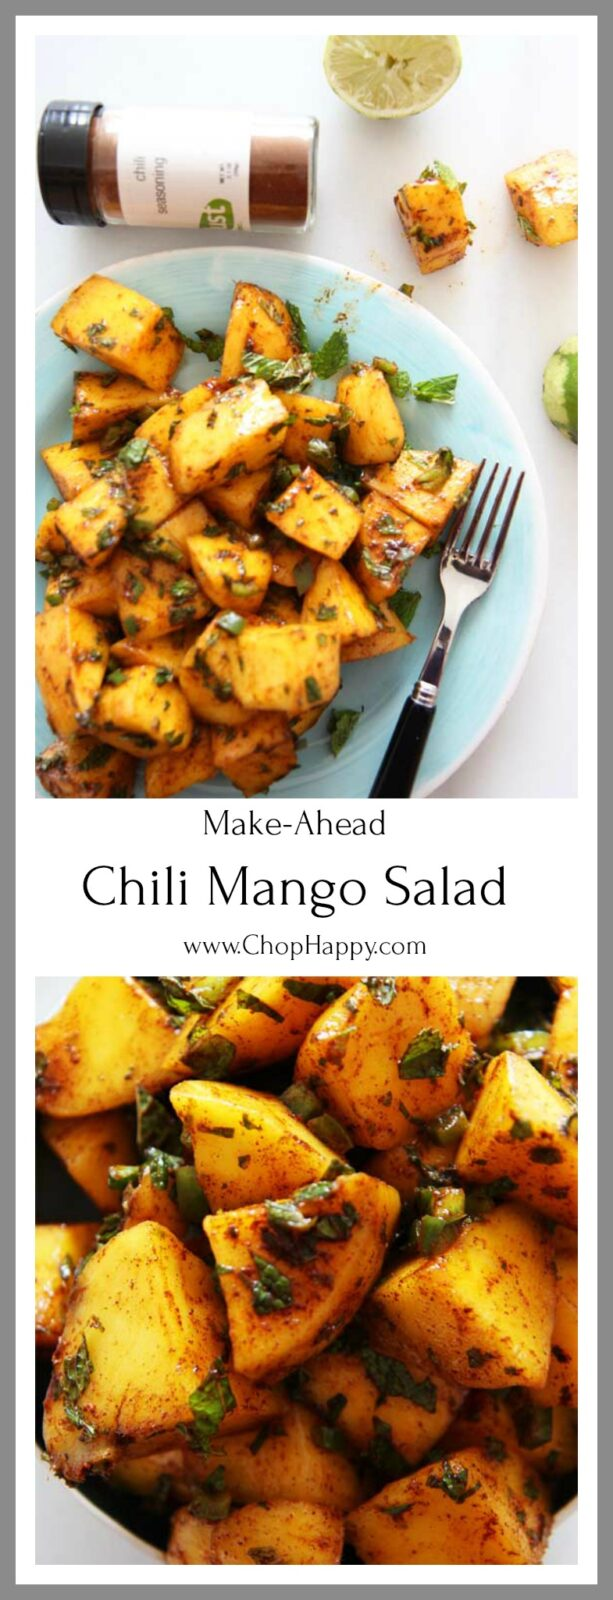 Sunshine Mango Salad Recipe is so refreshing. If your in a rush or beginner cook this recipe is for you. Its so easy to make and is sweet, smokey, and a hint of spice.